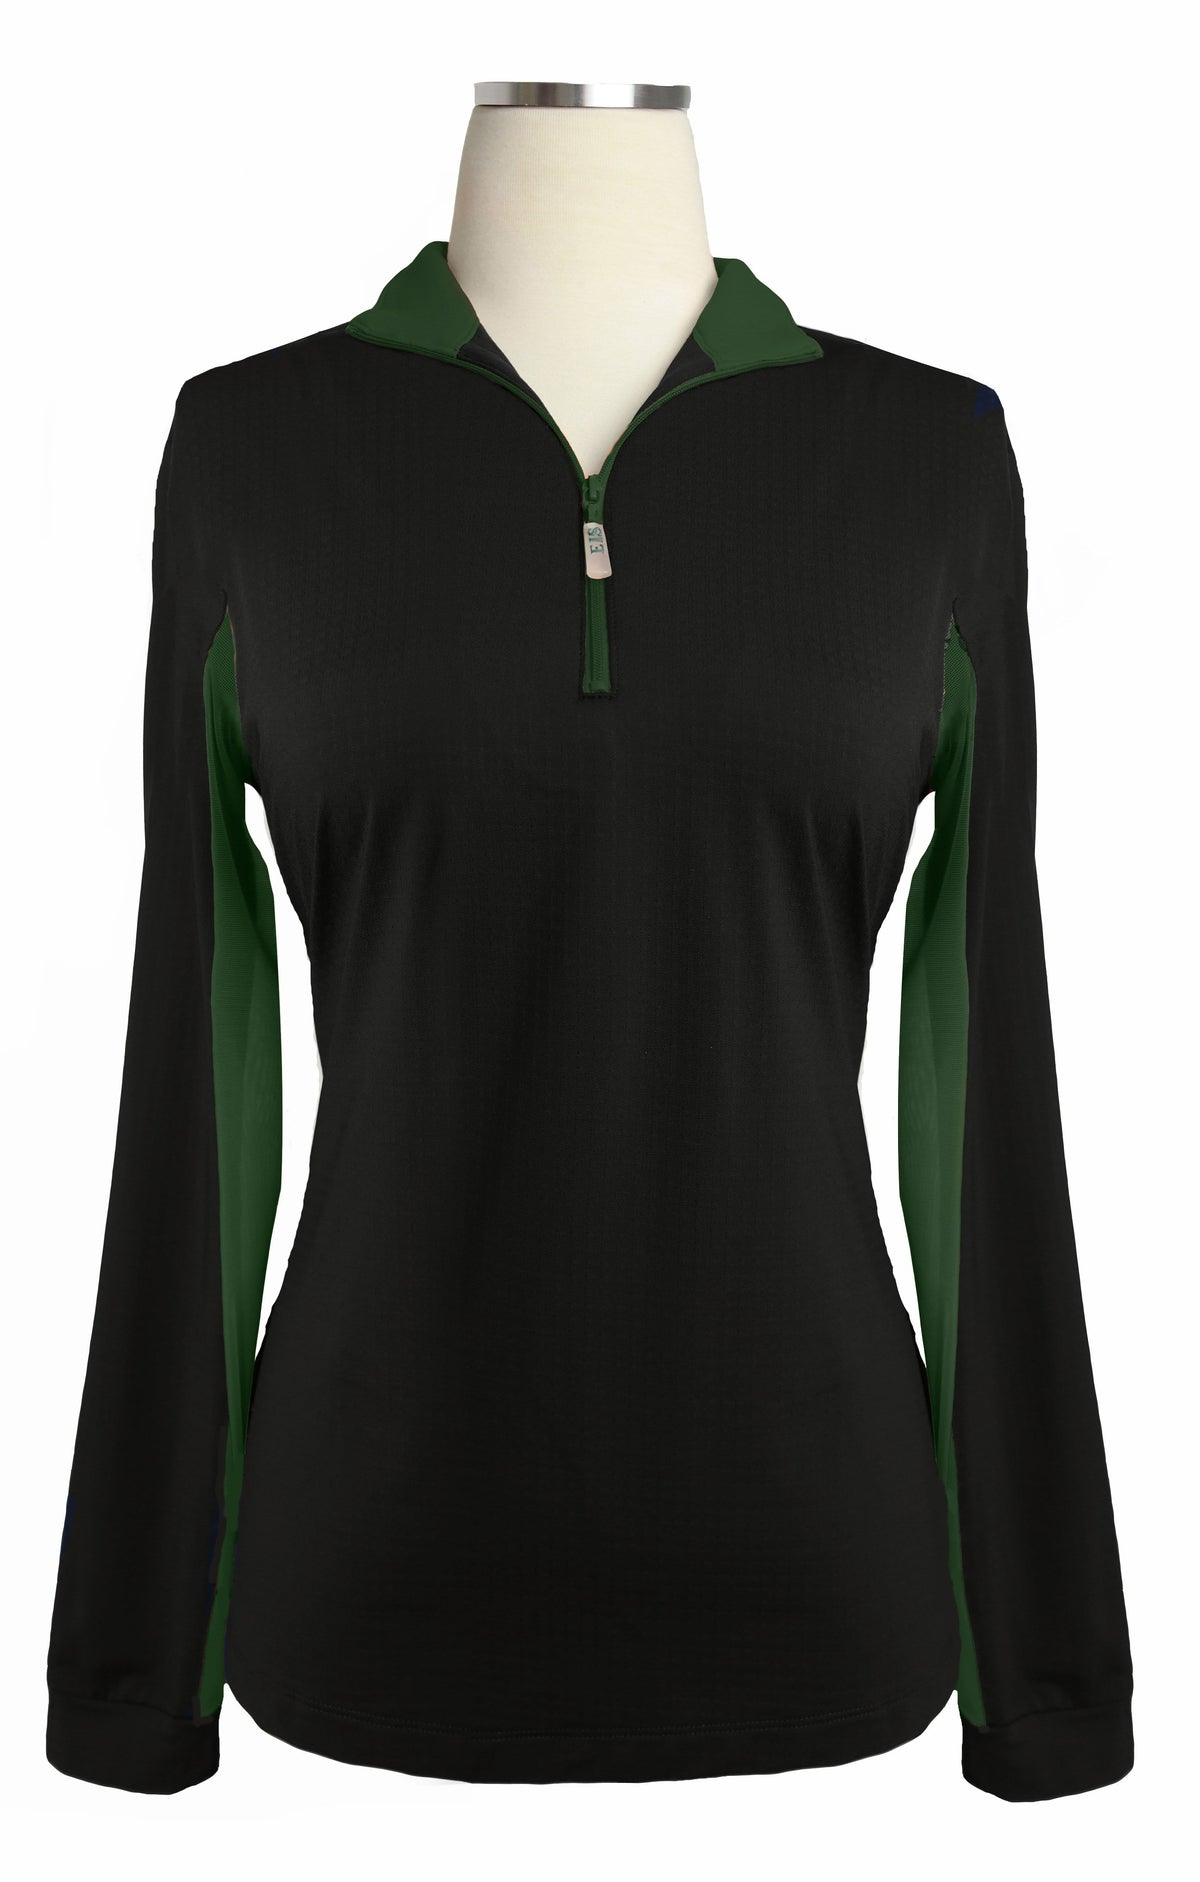 EIS Sunshirt Small / Black/Hunter Green EIS Limited Edition Black/Hunter Green equestrian team apparel online tack store mobile tack store custom farm apparel custom show stable clothing equestrian lifestyle horse show clothing riding clothes horses equestrian tack store